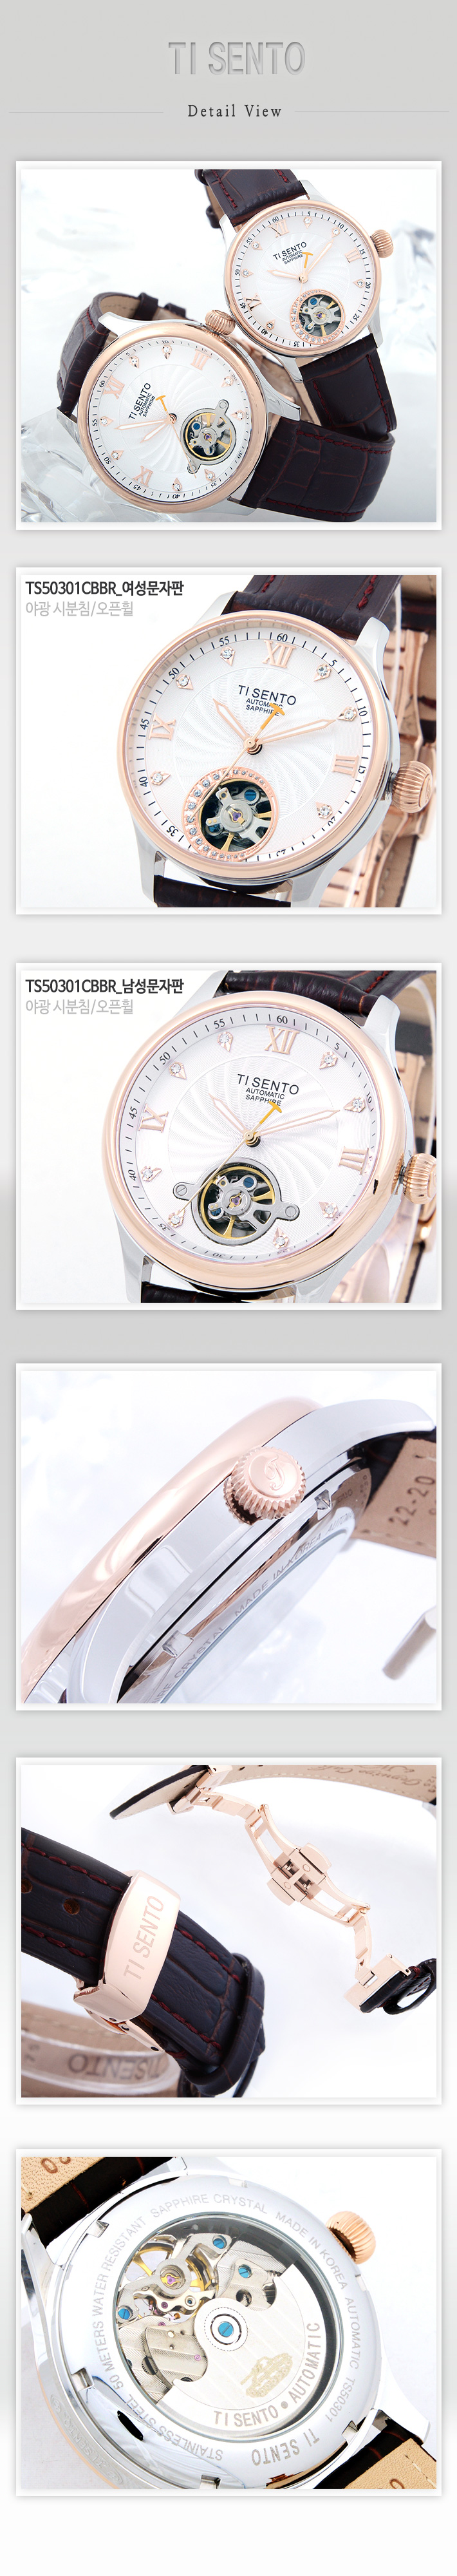 [ TISENTO ] KOREA MADE HIGH QUALITY AUTOMATIC MECHANICAL GENUINE CALF WATERPROOF LEATHER STRAP WATCH TS 50301 CBBR M